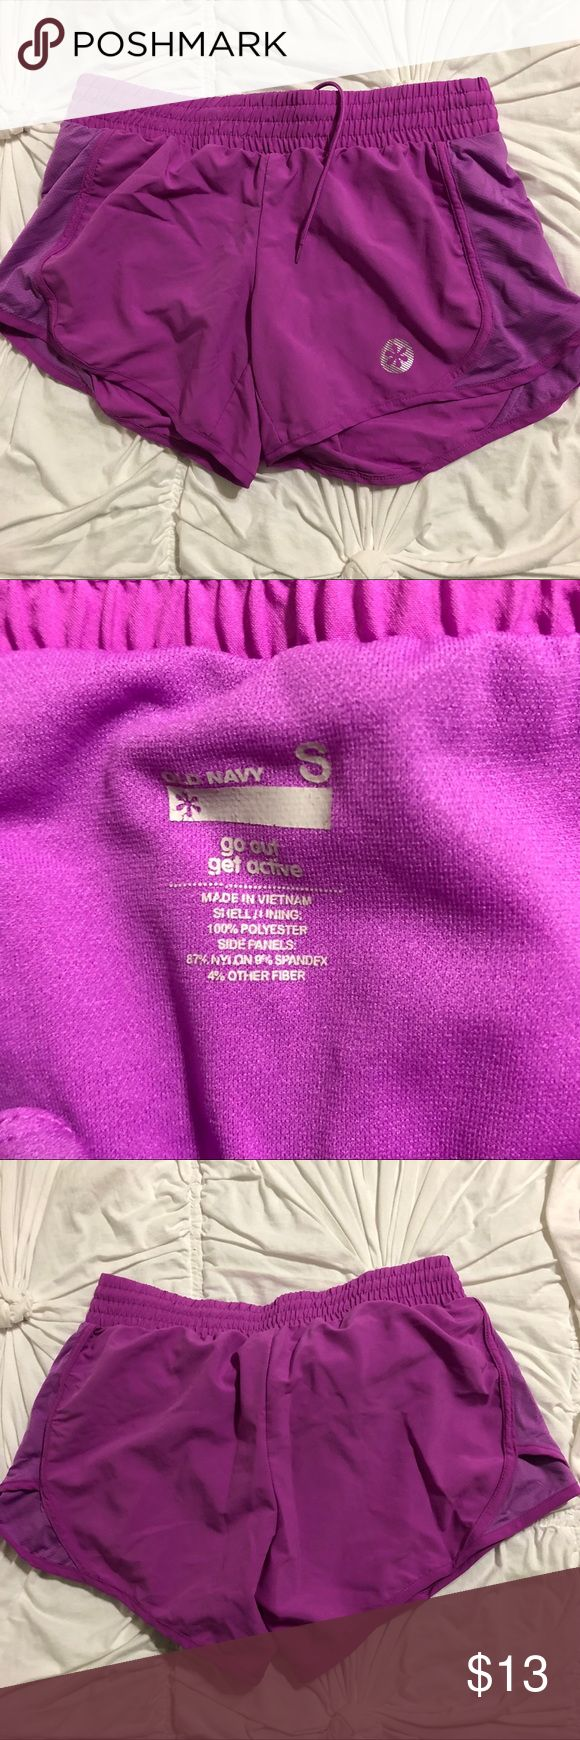 Women's Old Navy Workout Shorts Size Small Great condition. Lightweight material. Size Small. Great purple color.  Pet free/smoke free home. Old Navy Shorts